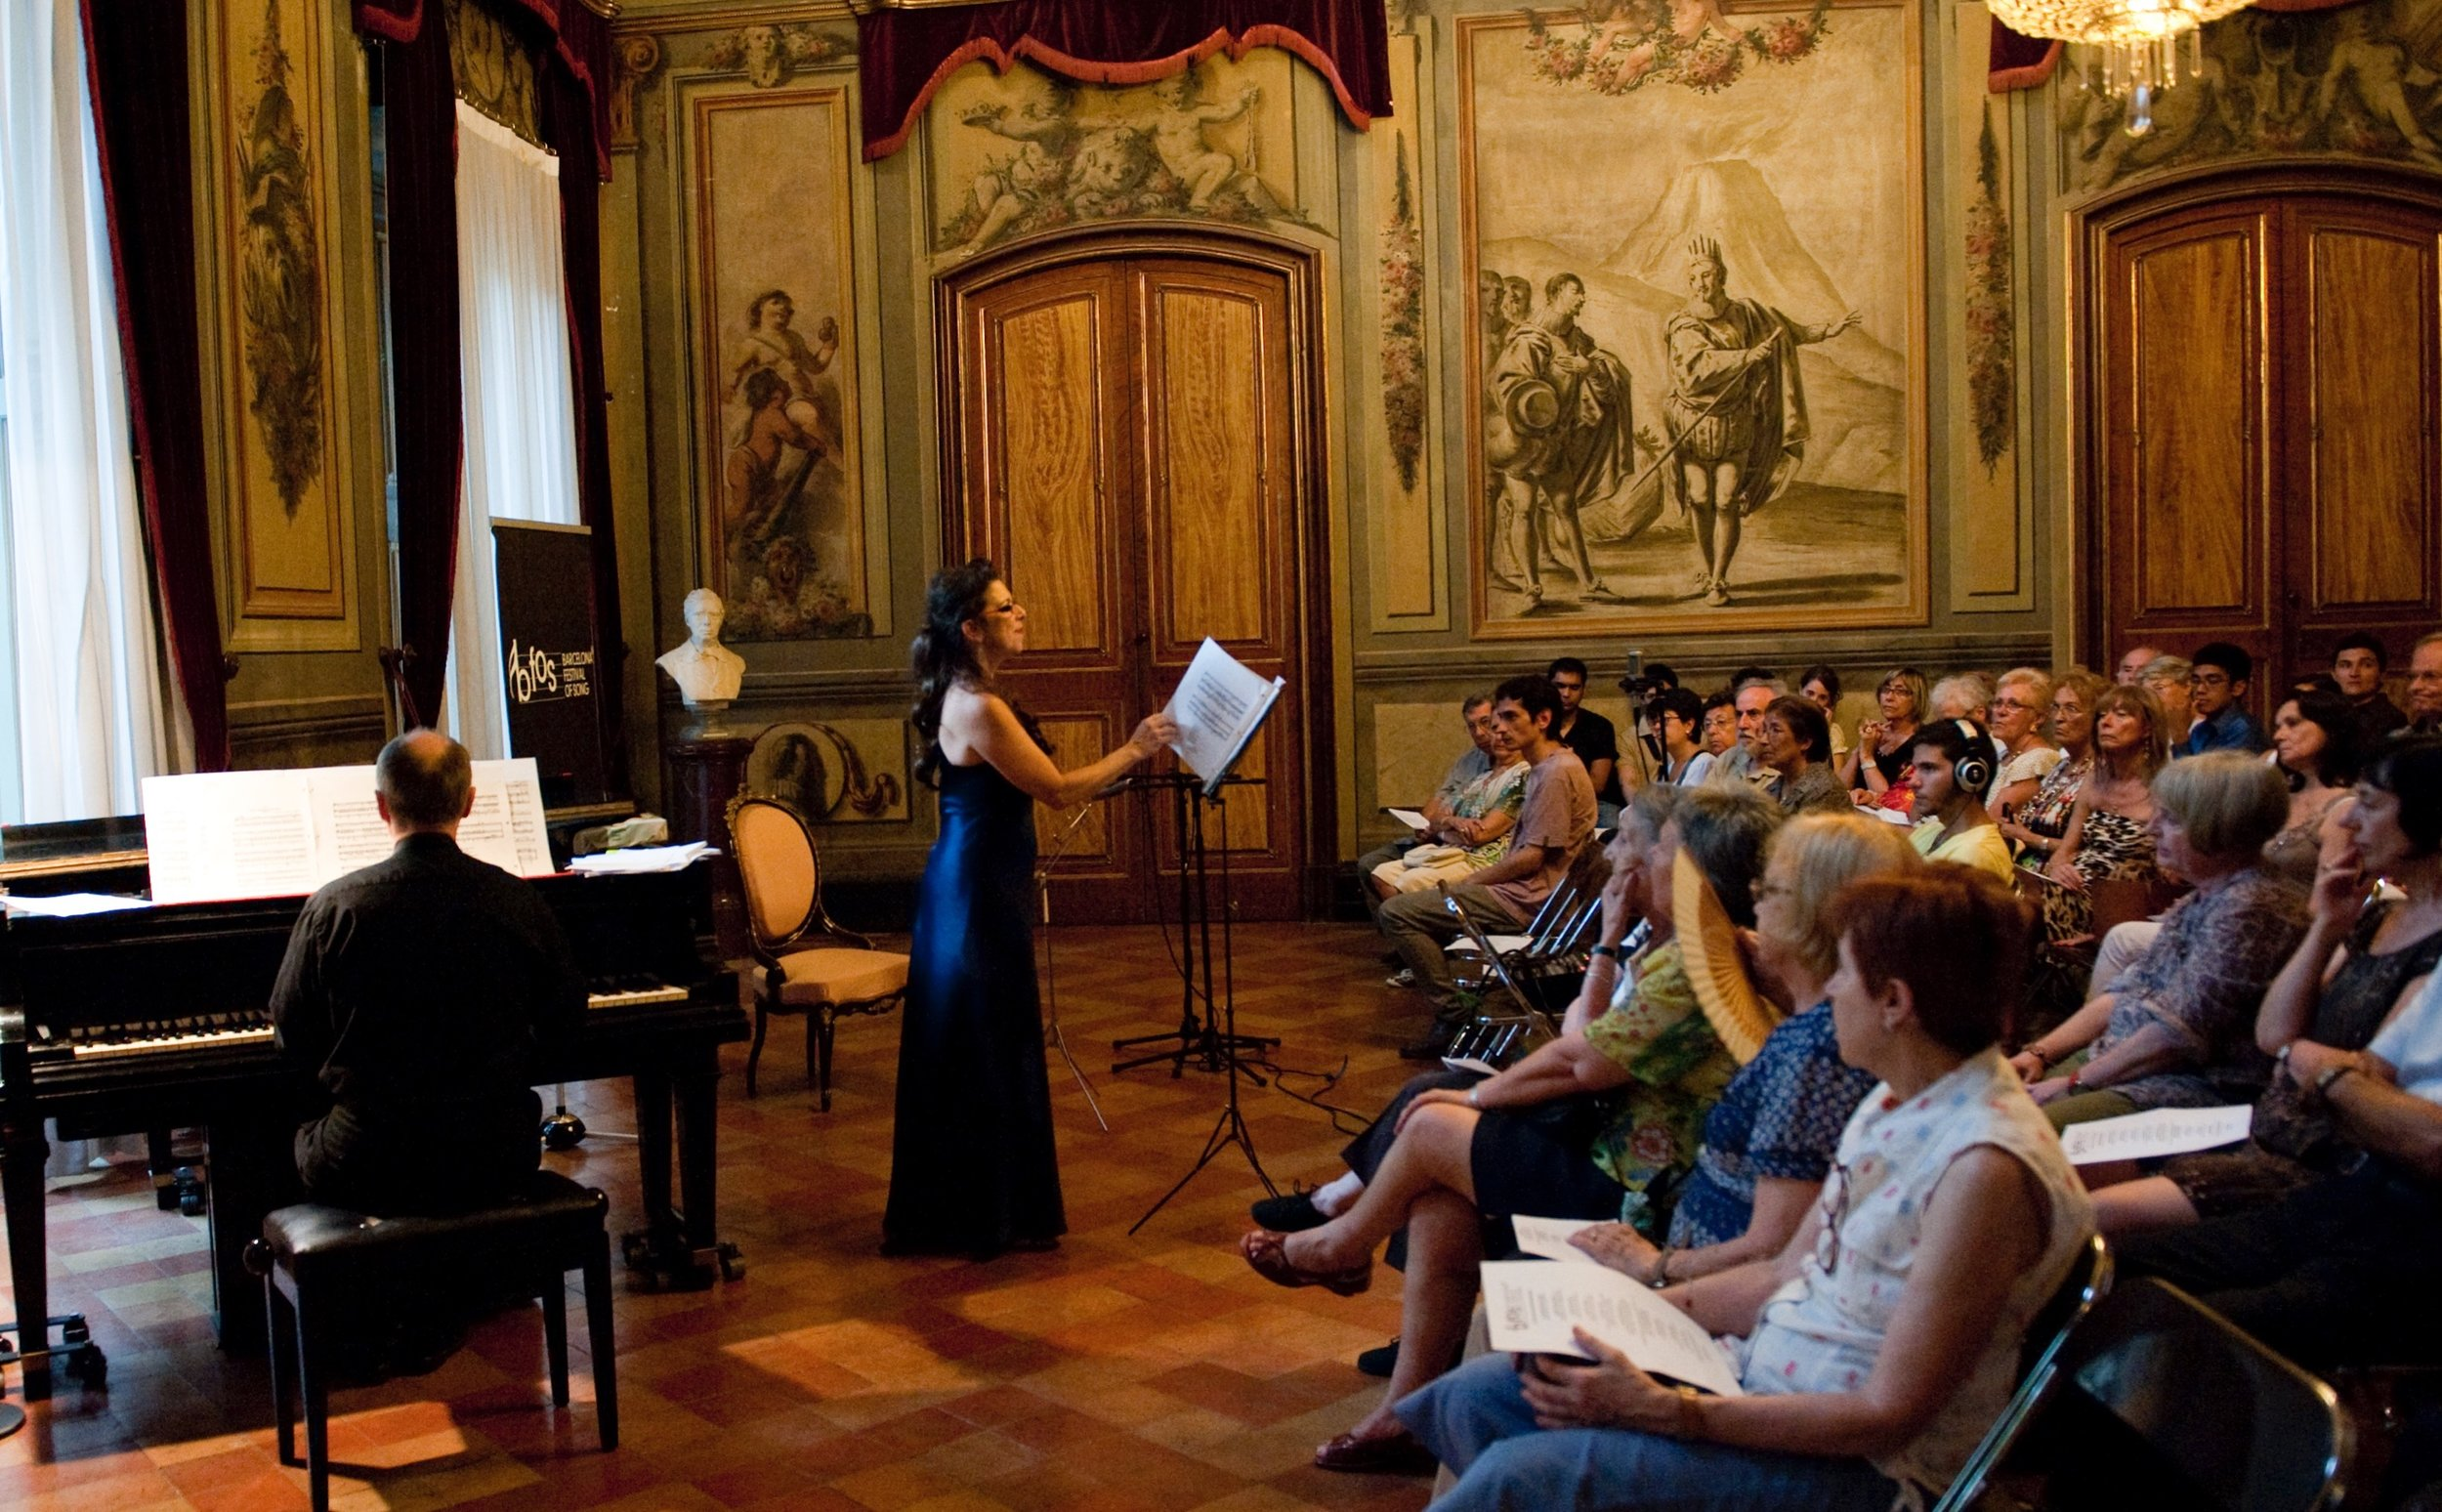 SING In two concerts - At the Barcelona Festival of Song you have the opportunity to sing in two public concerts in beautiful venues in the vibrant city of Barcelona. The course has no age limit and is open to voice teachers and students.